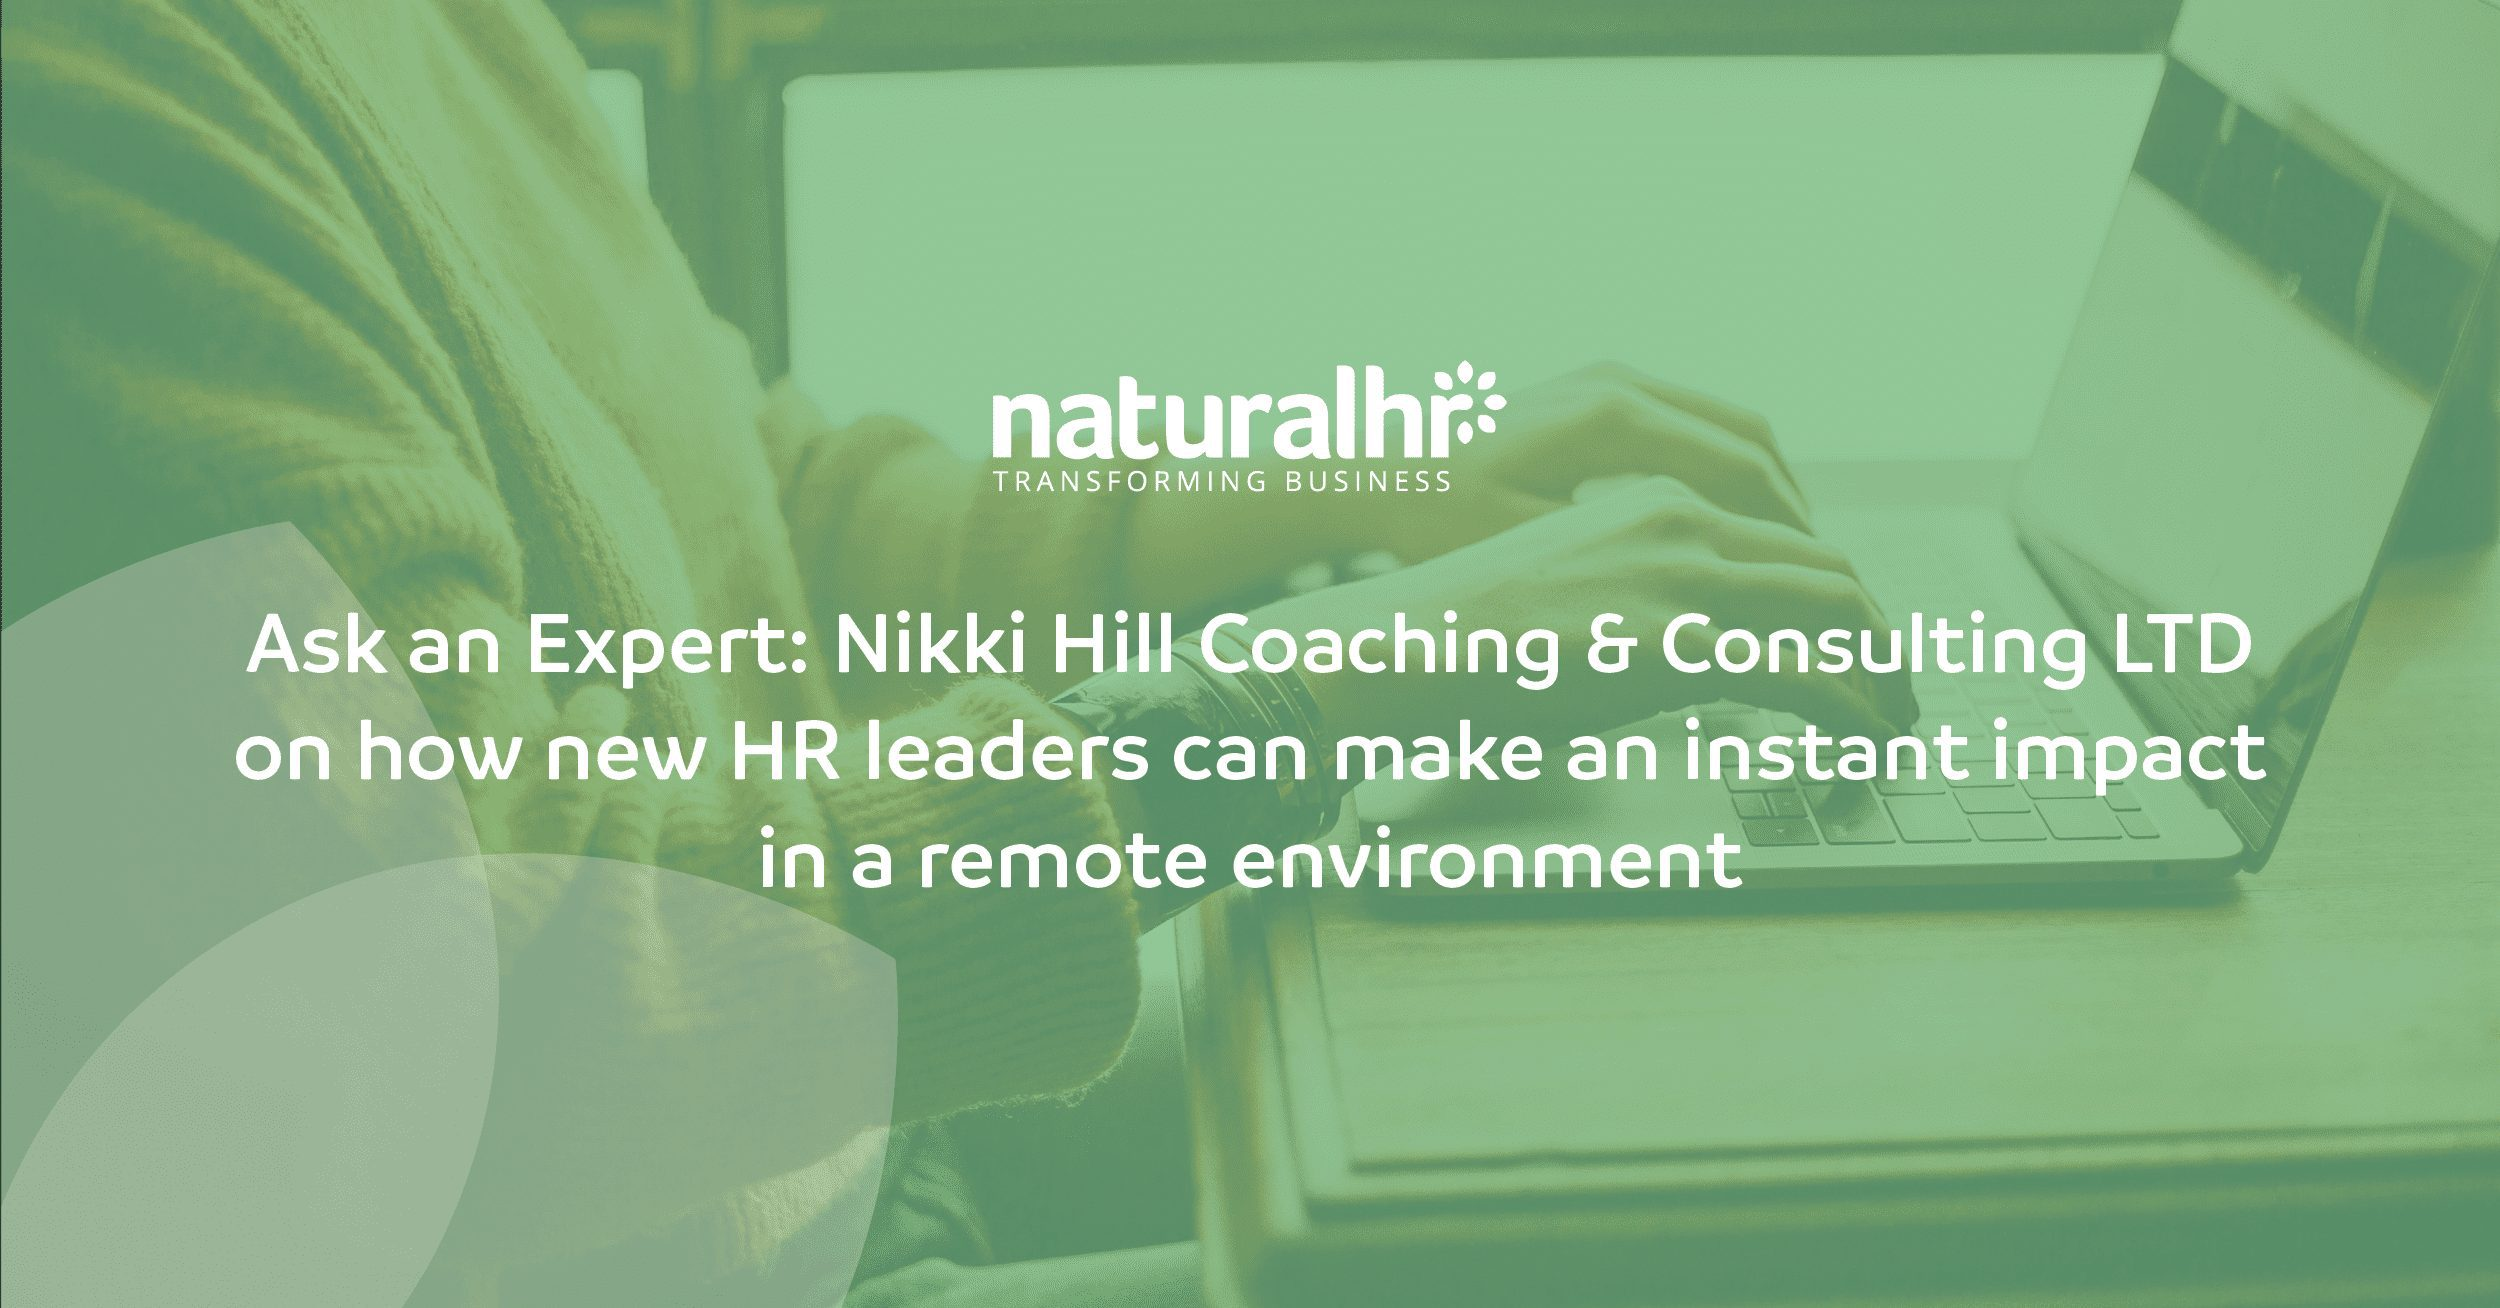 Nikki Hill on how new HR leaders can make an instant impact